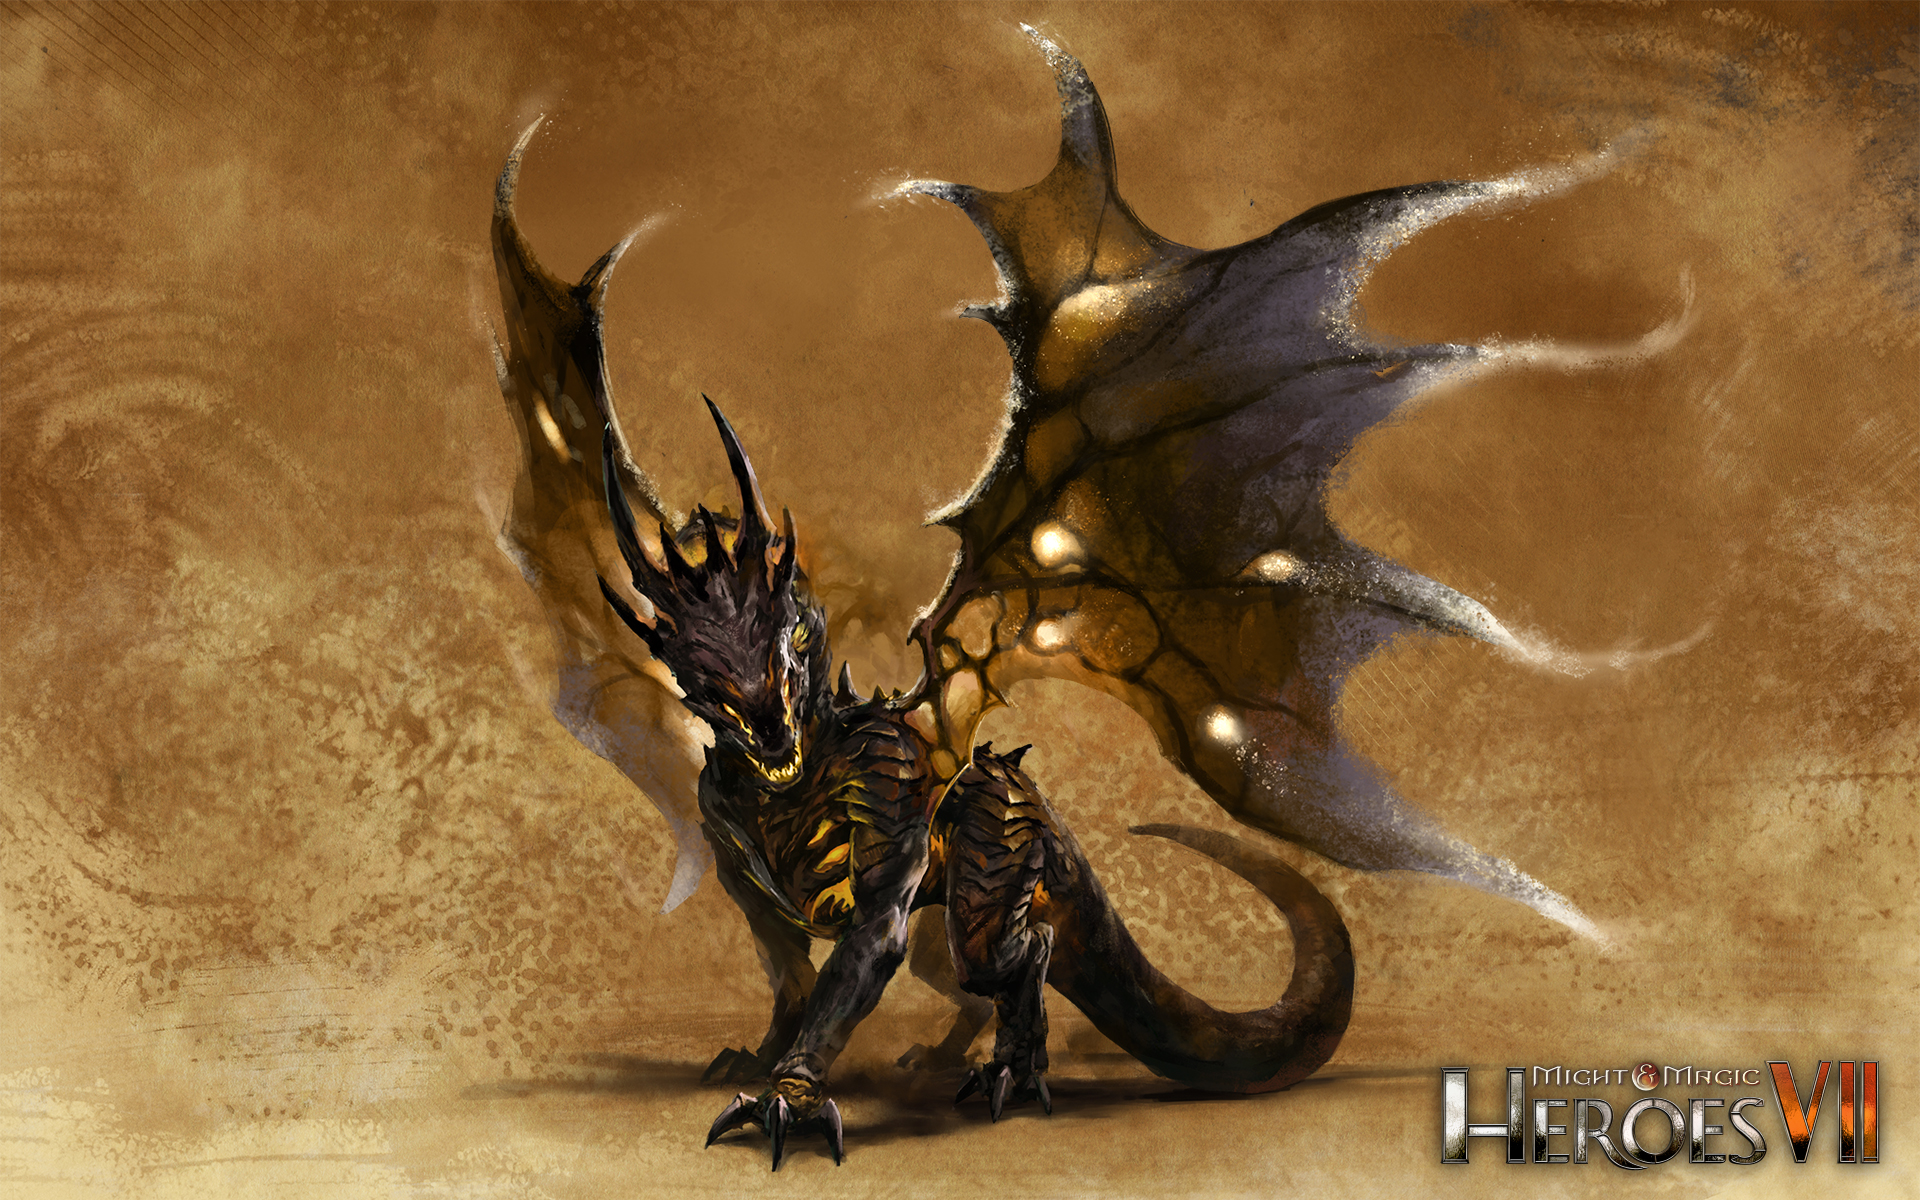 https://ubistatic-a.akamaihd.net/0004/prod/images/150810_35603b865c/PIC_creature_dungeon_shadow_dragon_artwork_large.jpg